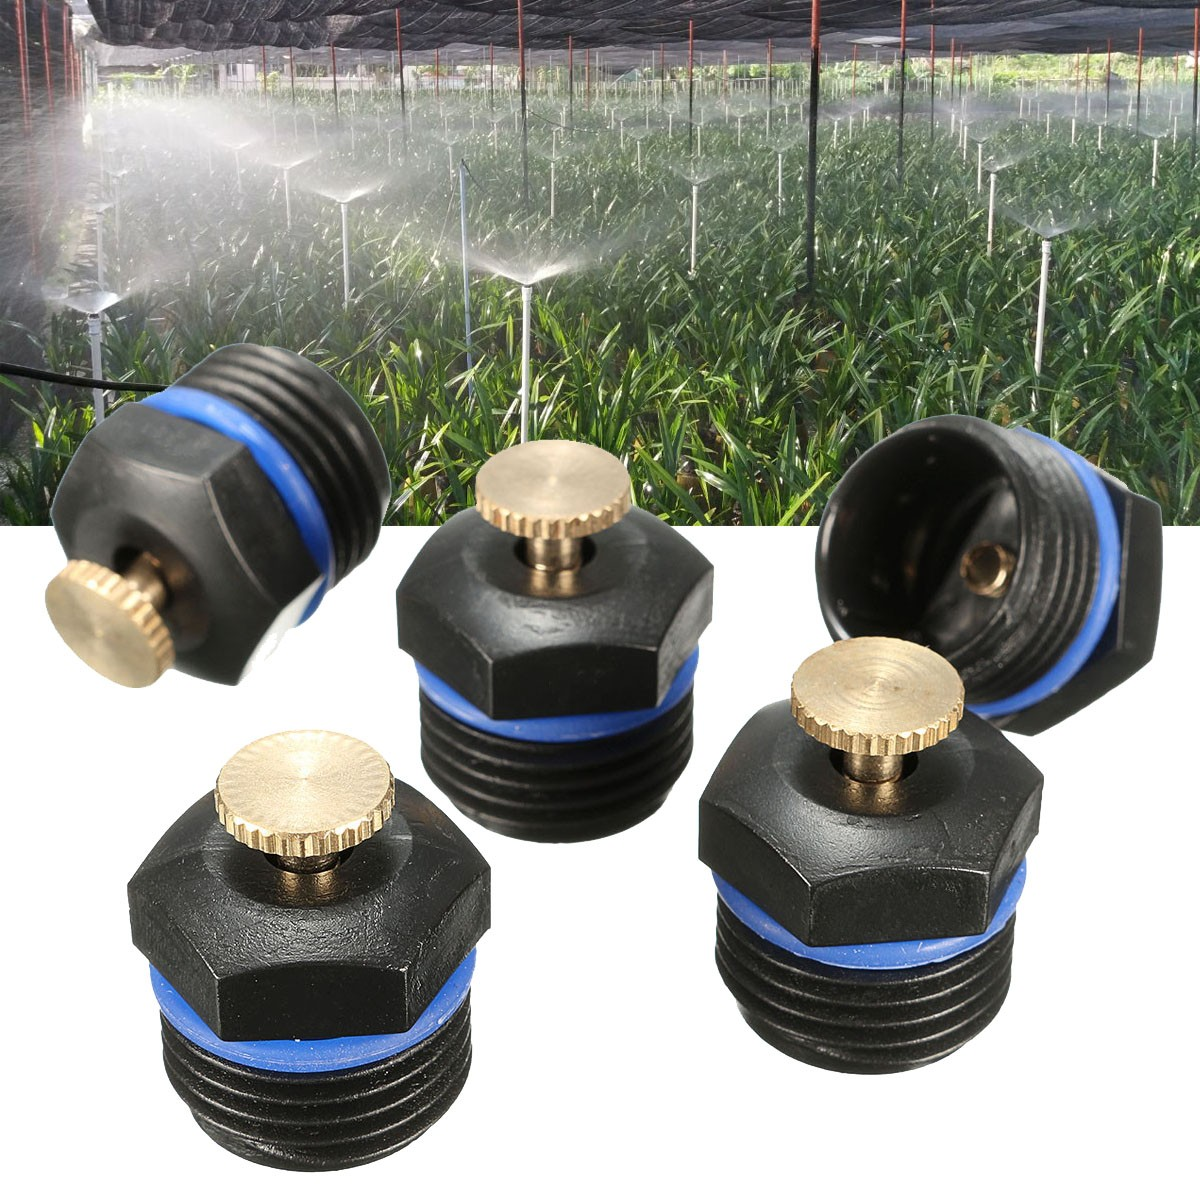 5Pcs Garden Sprinkler Head Water Lawn Sprinkle Irrigation Spray System Plant Flower Cooling